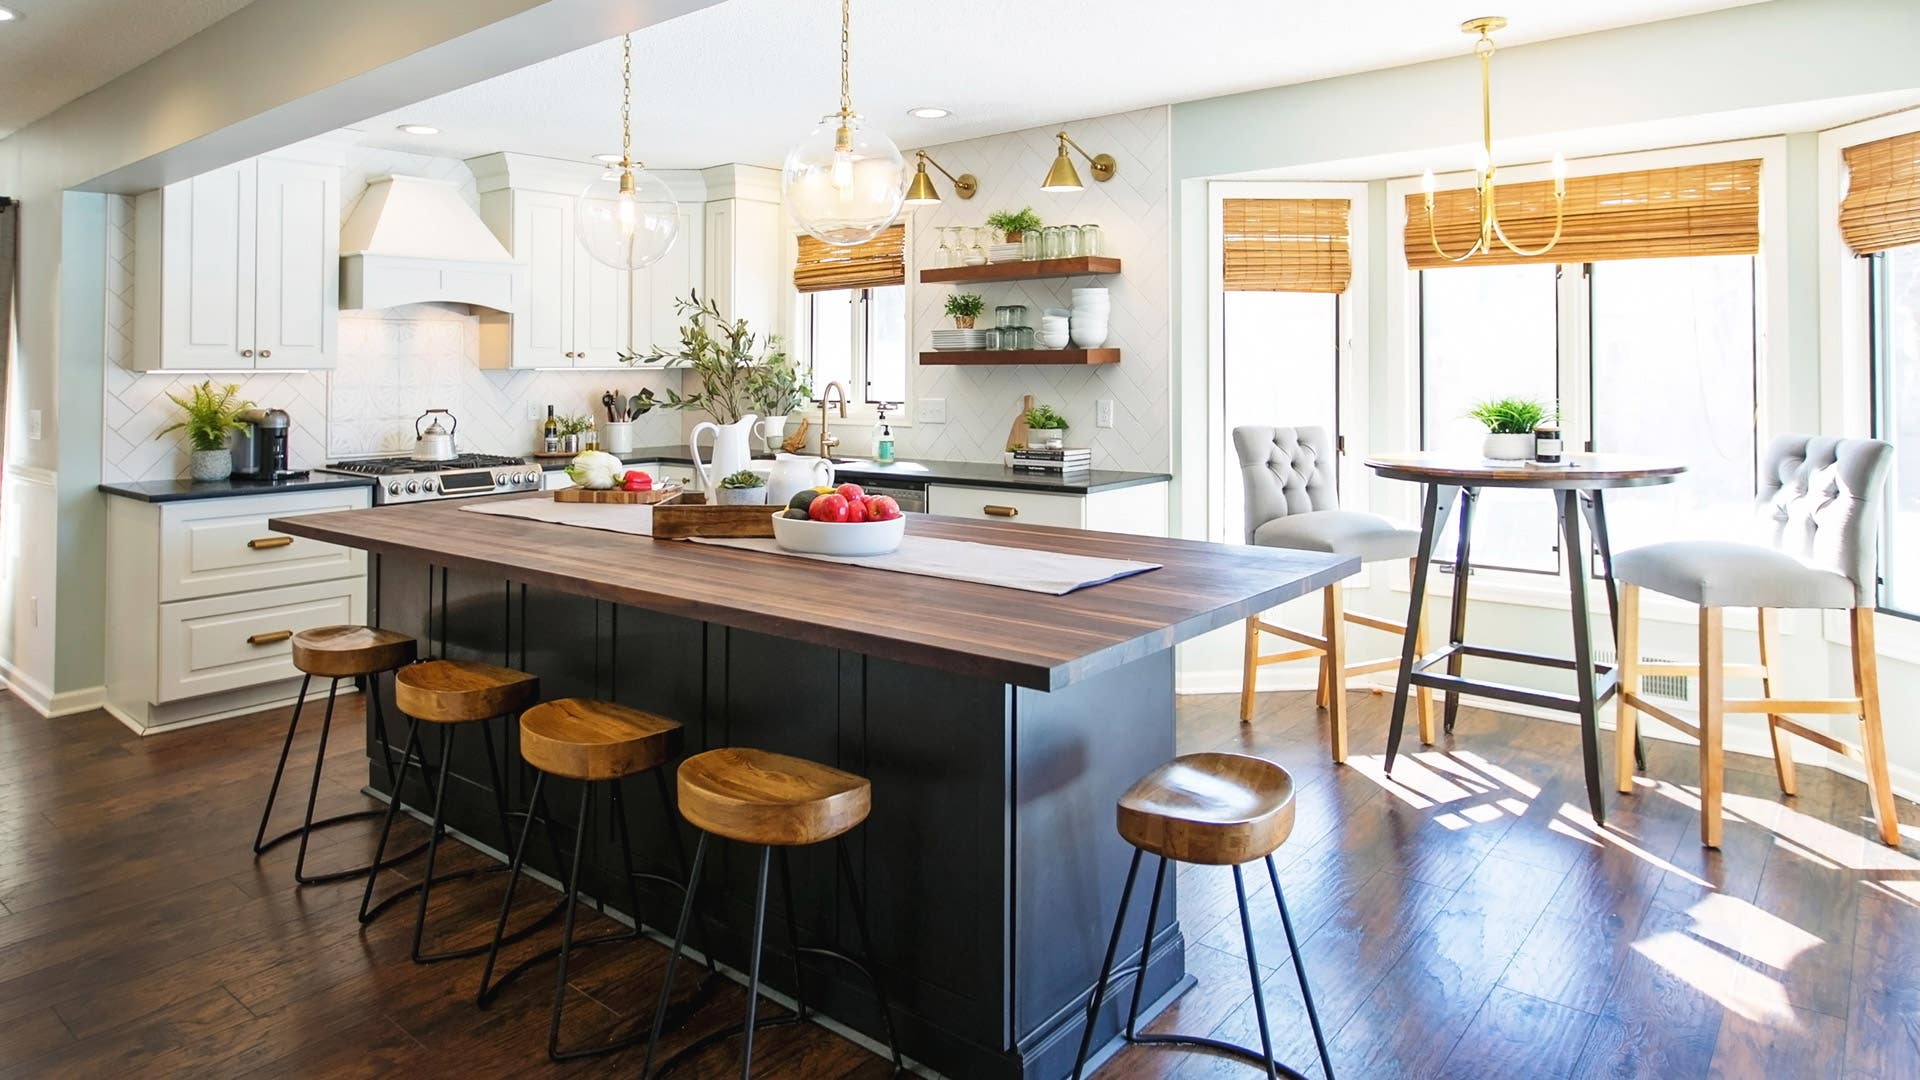 Difference Between Stock, RTA, Semi-Custom, and Custom Cabinets